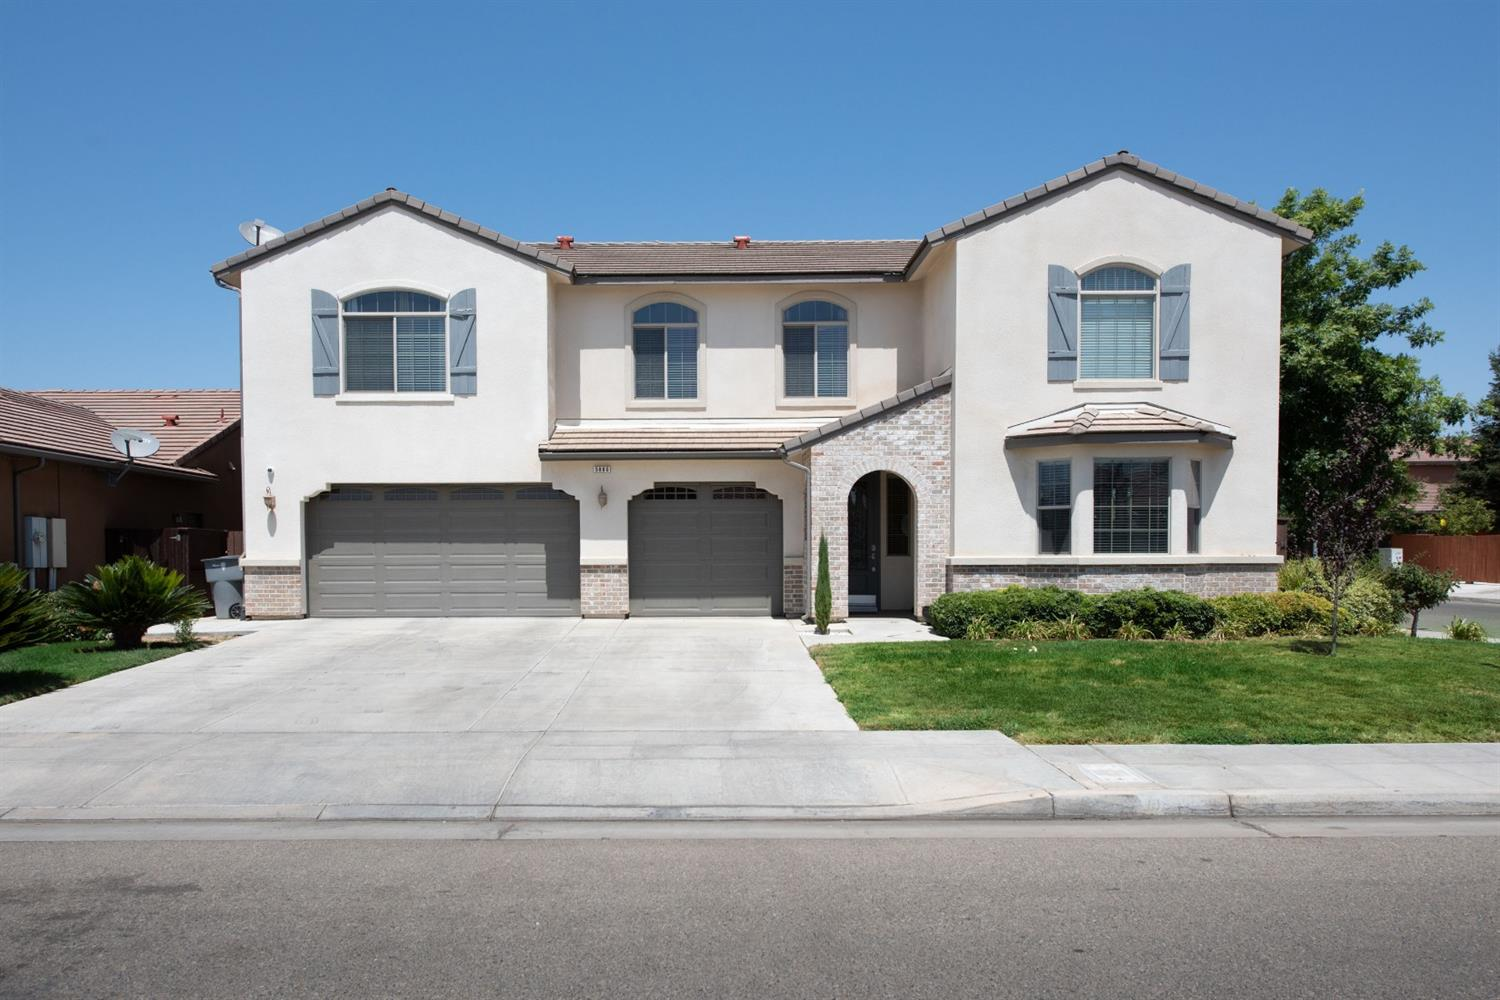 Photo of 5880 W Donner Avenue, Fresno, CA 93722